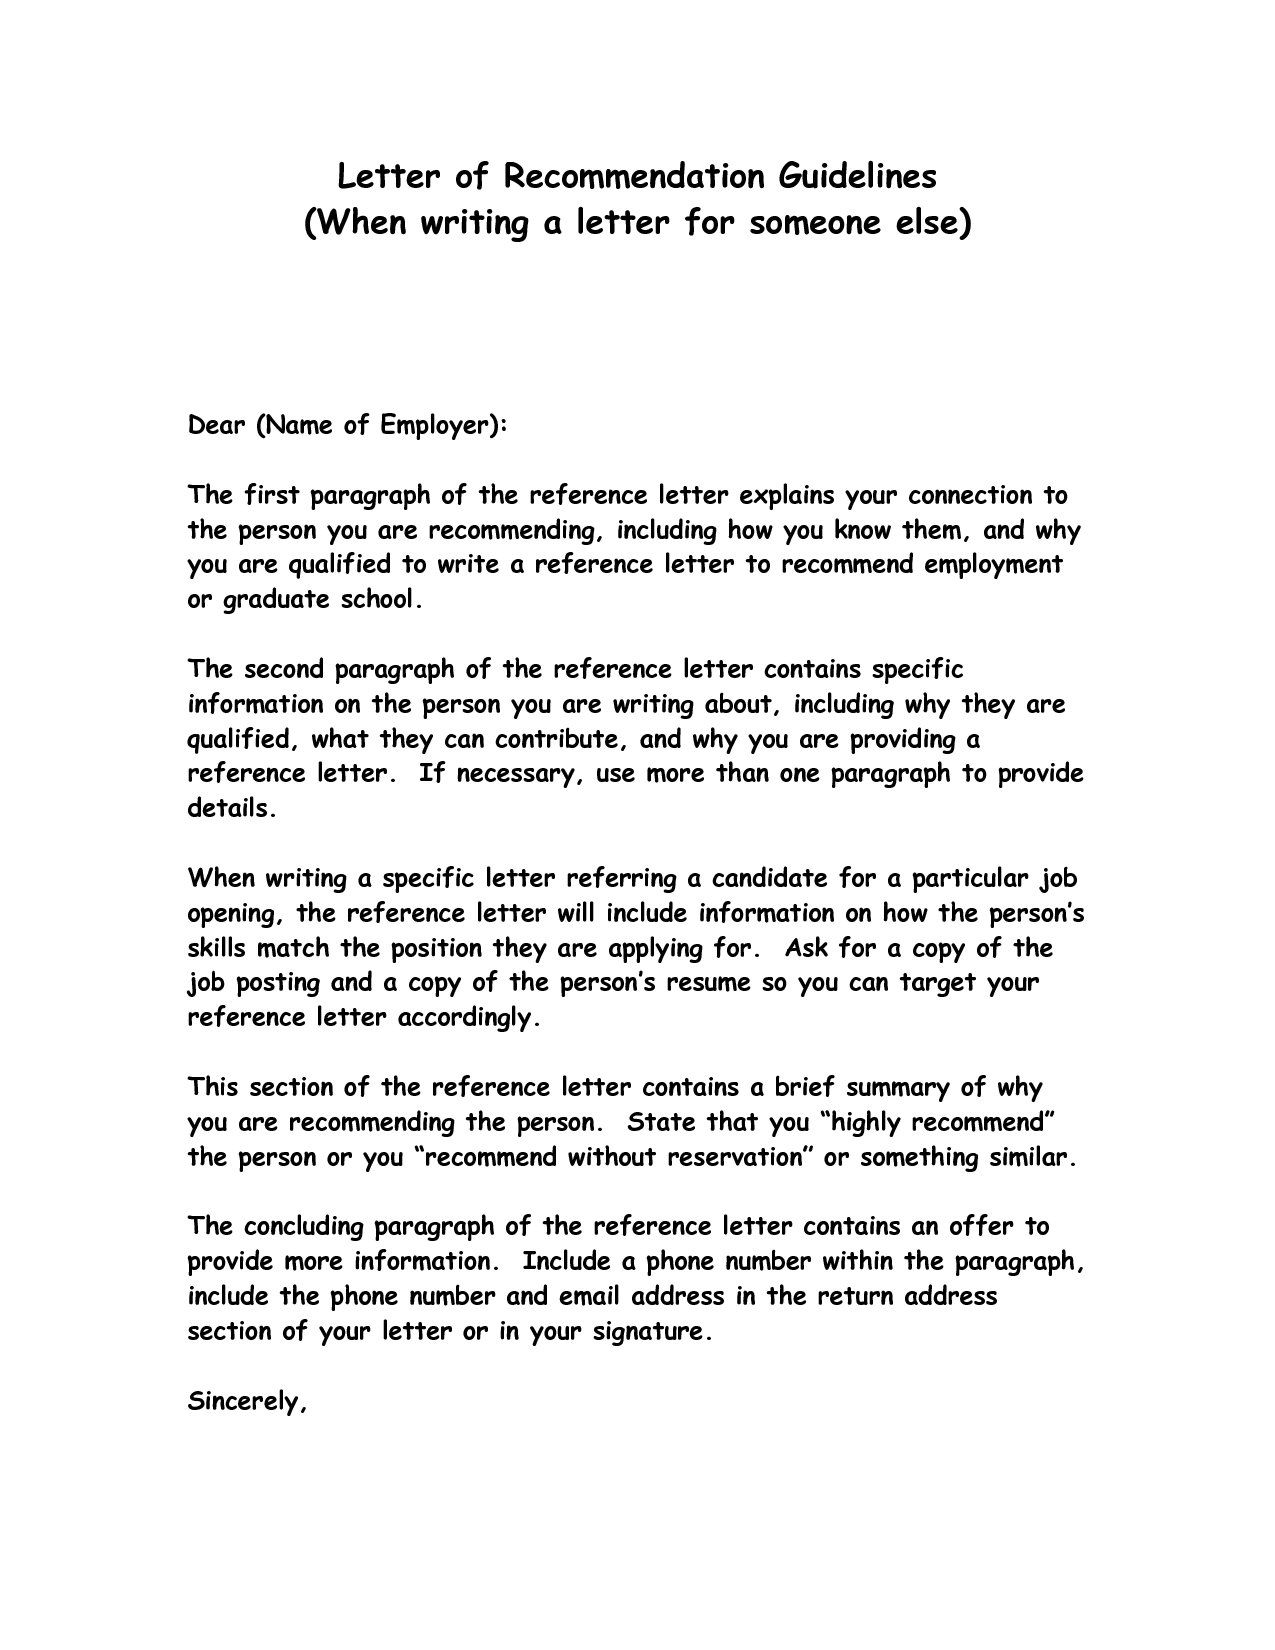 Letter of Recommendation Examples and Writing Tips – Reference Letter Formats